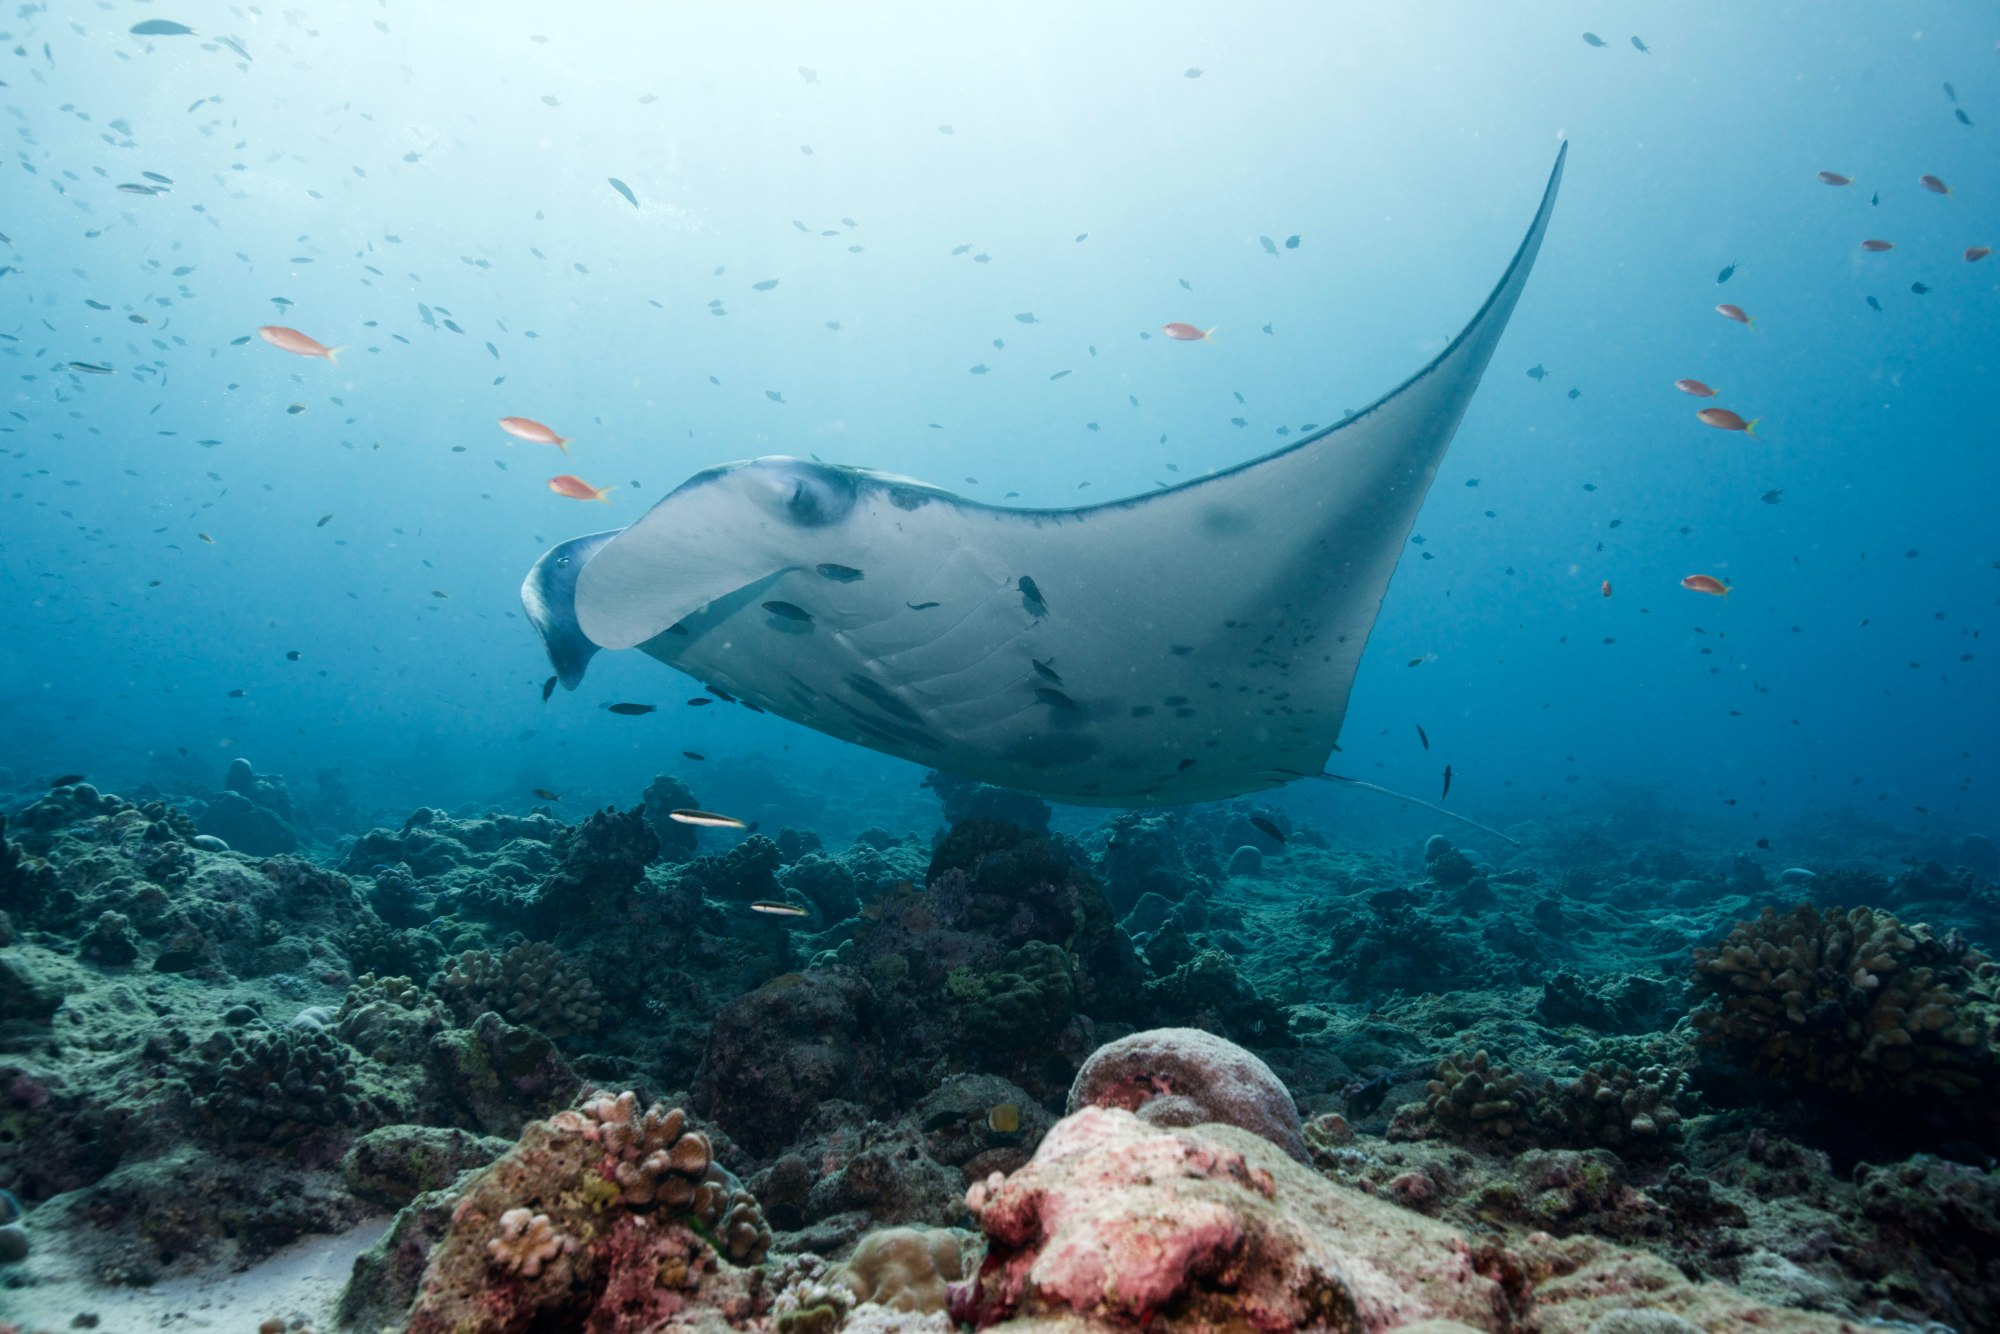 hight resolution of a manta ray in a cleaning station photo credit j rgen gangoly